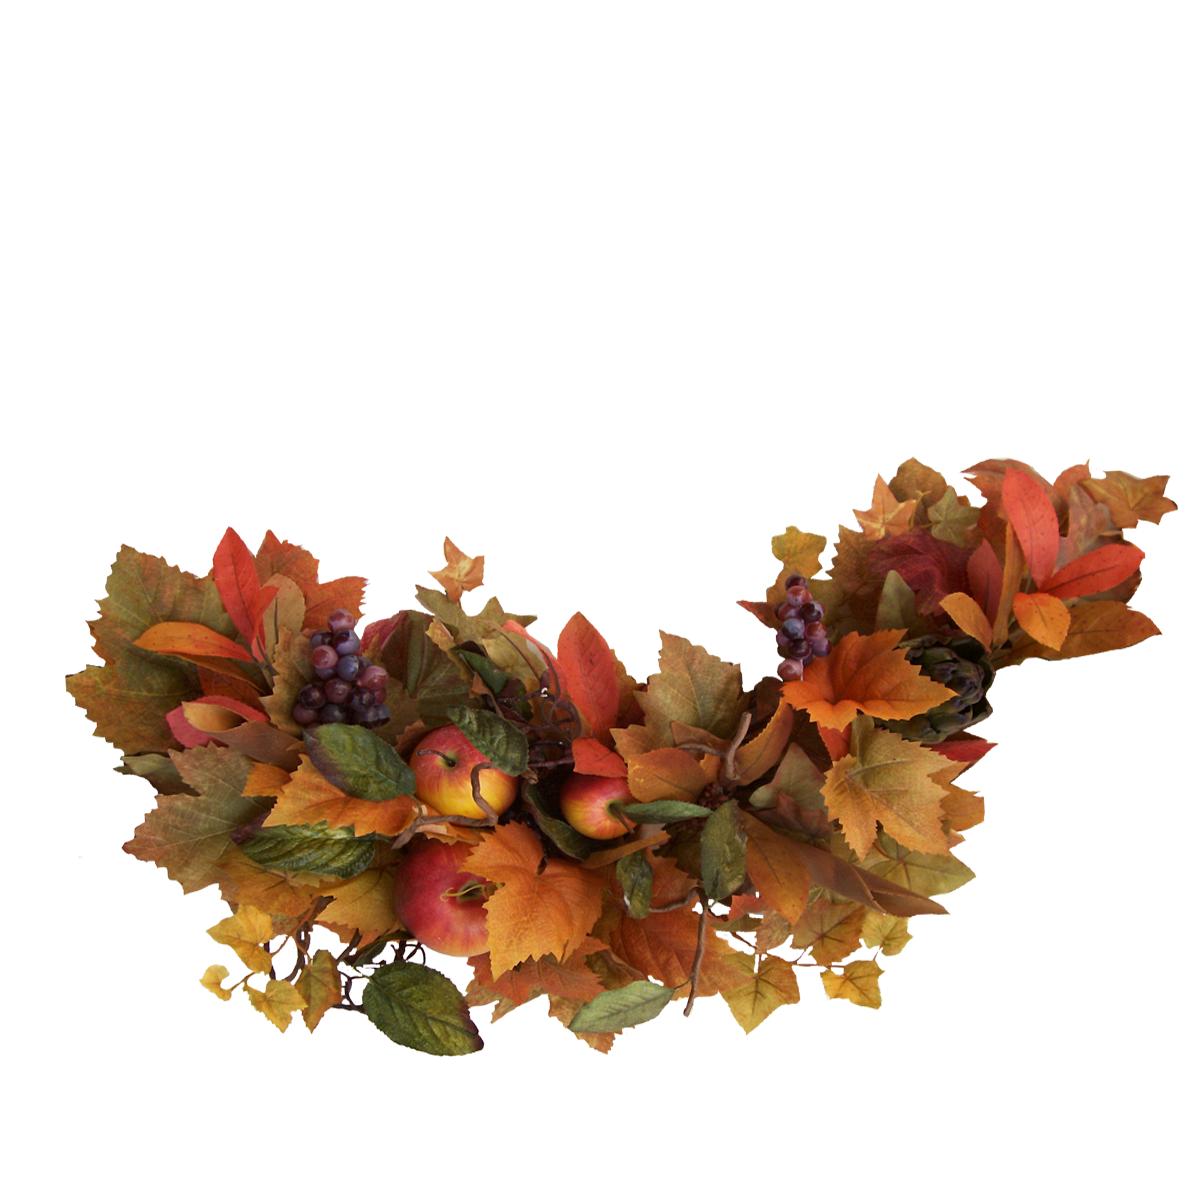 Thanksgiving leaf clipart banner freeuse Digital scrapbooking Thanksgiving Leaf Clip art - autumn leaves 1200 ... banner freeuse